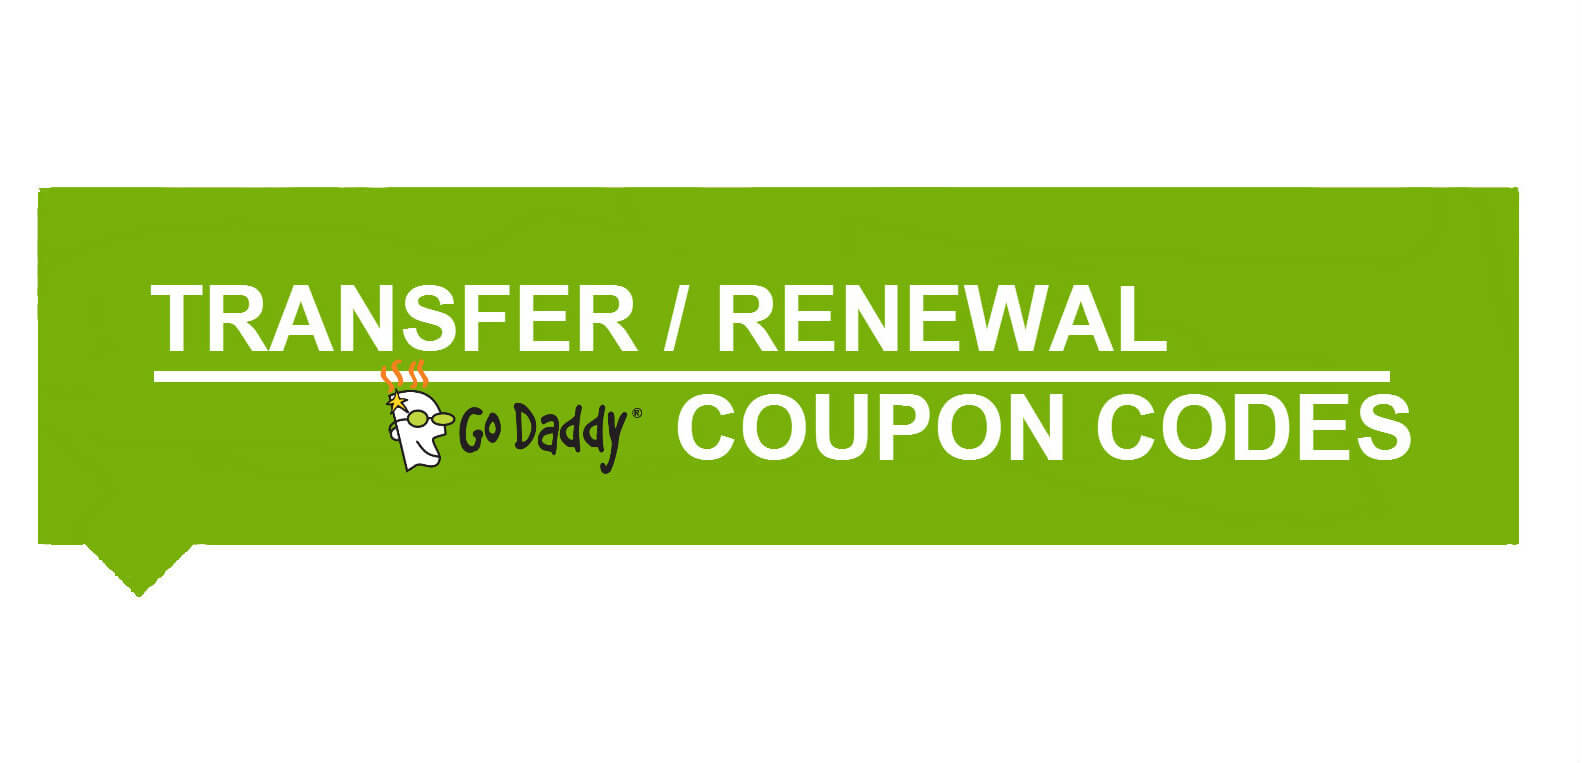 Godaddy.com coupon code